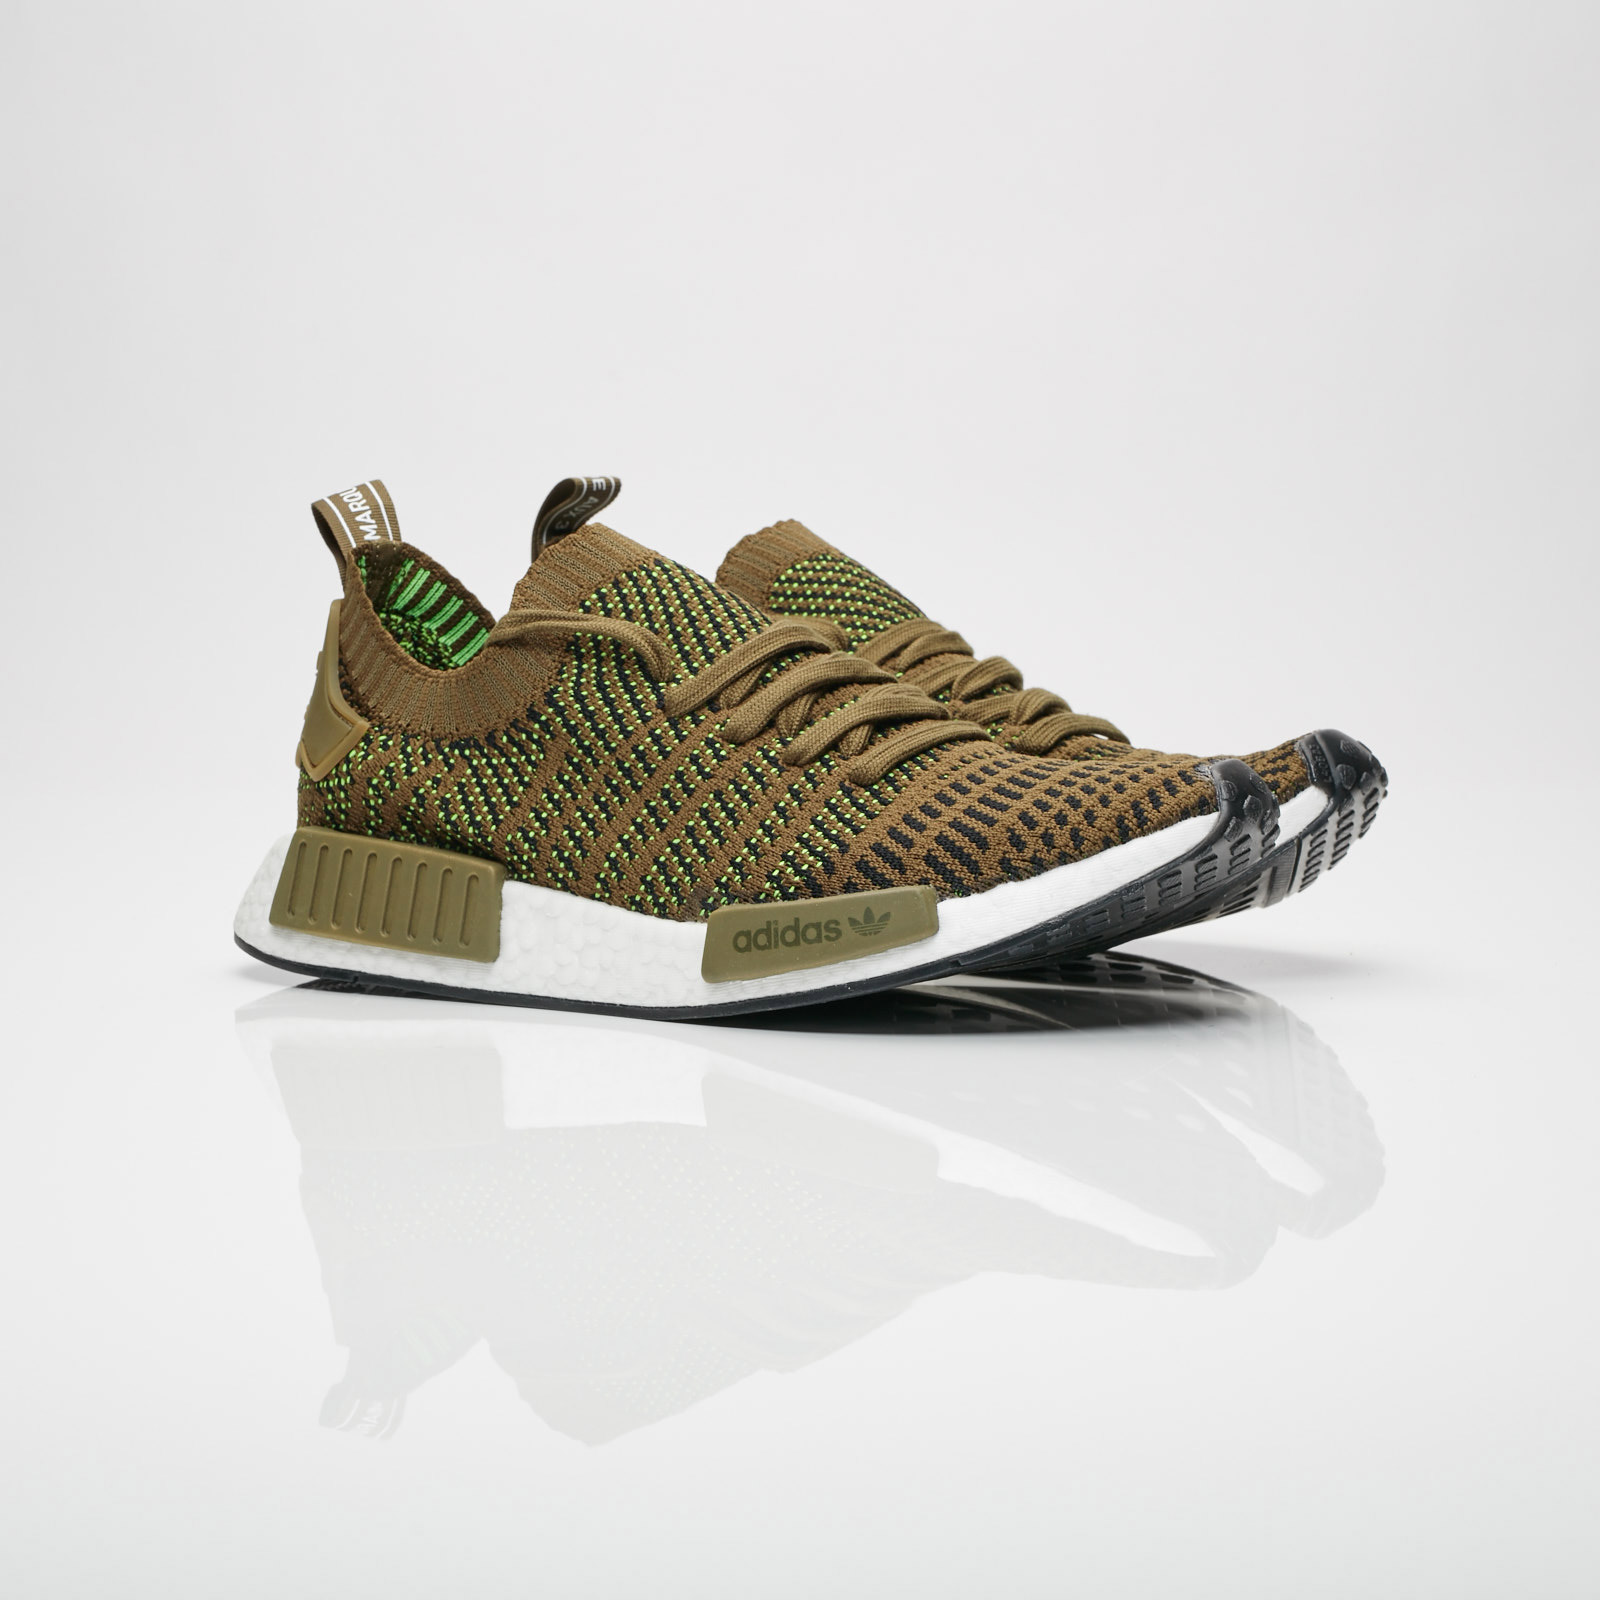 hot sale online 843e1 f8cc6 adidas Originals NMD R1 Stlt PK